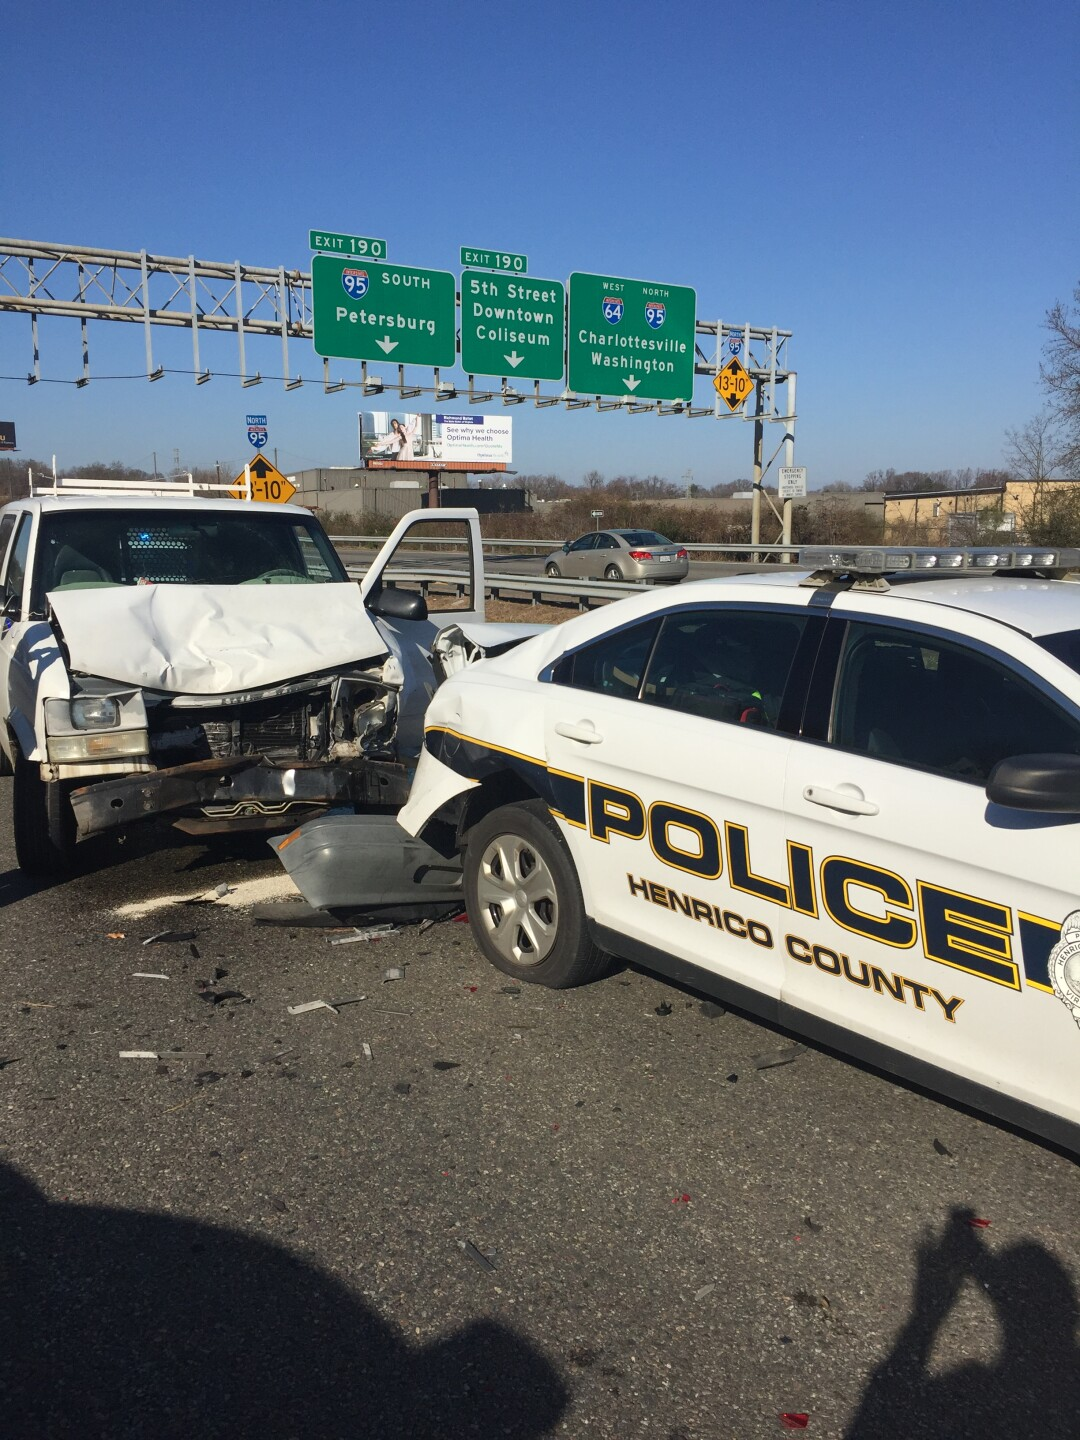 Photos: Driver charged with rear-ending Henrico police car: 'Please move over. It's thelaw'